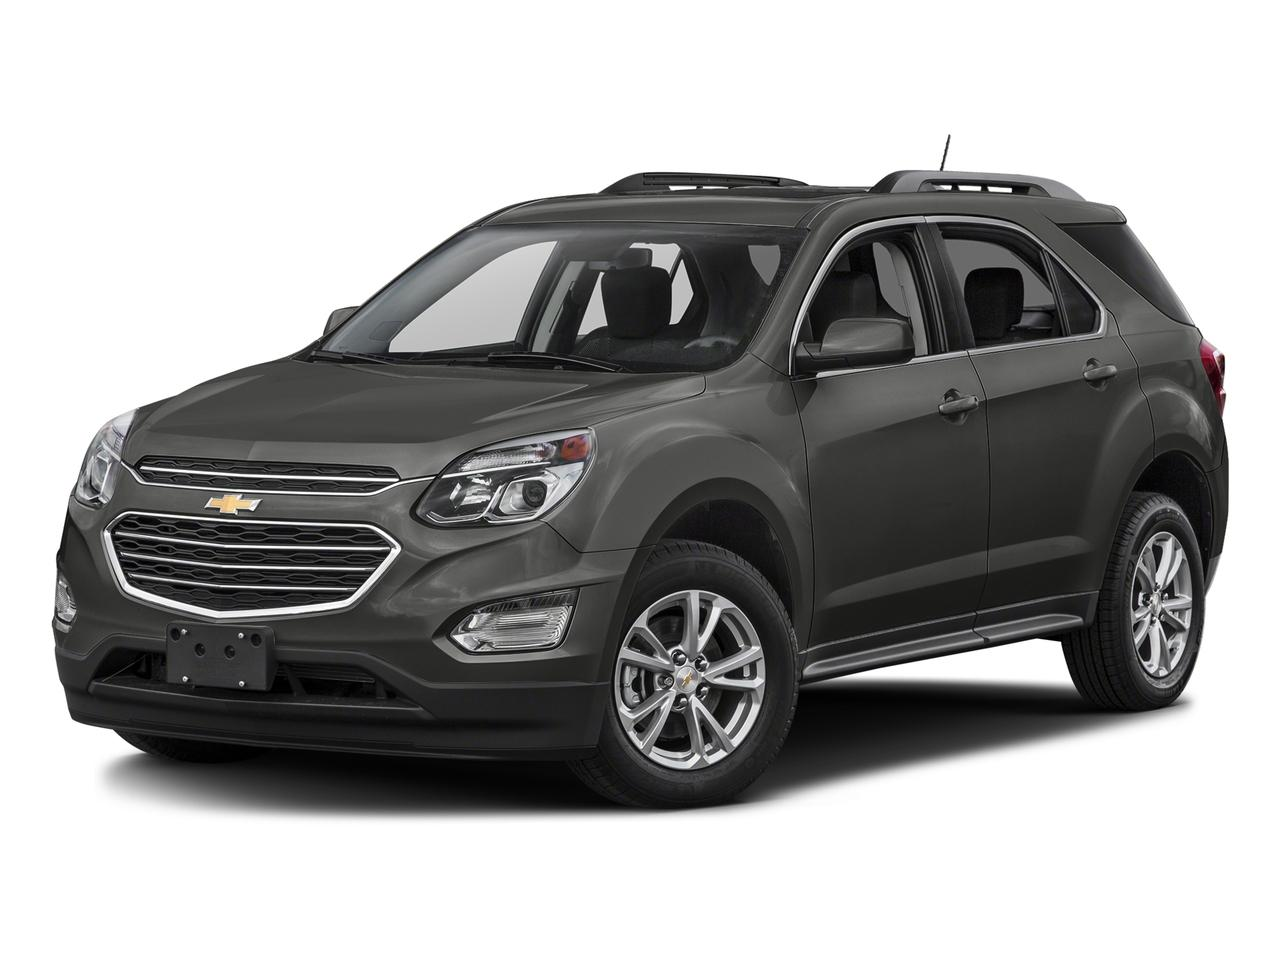 2016 Chevrolet Equinox Vehicle Photo in VINCENNES, IN 47591-5519